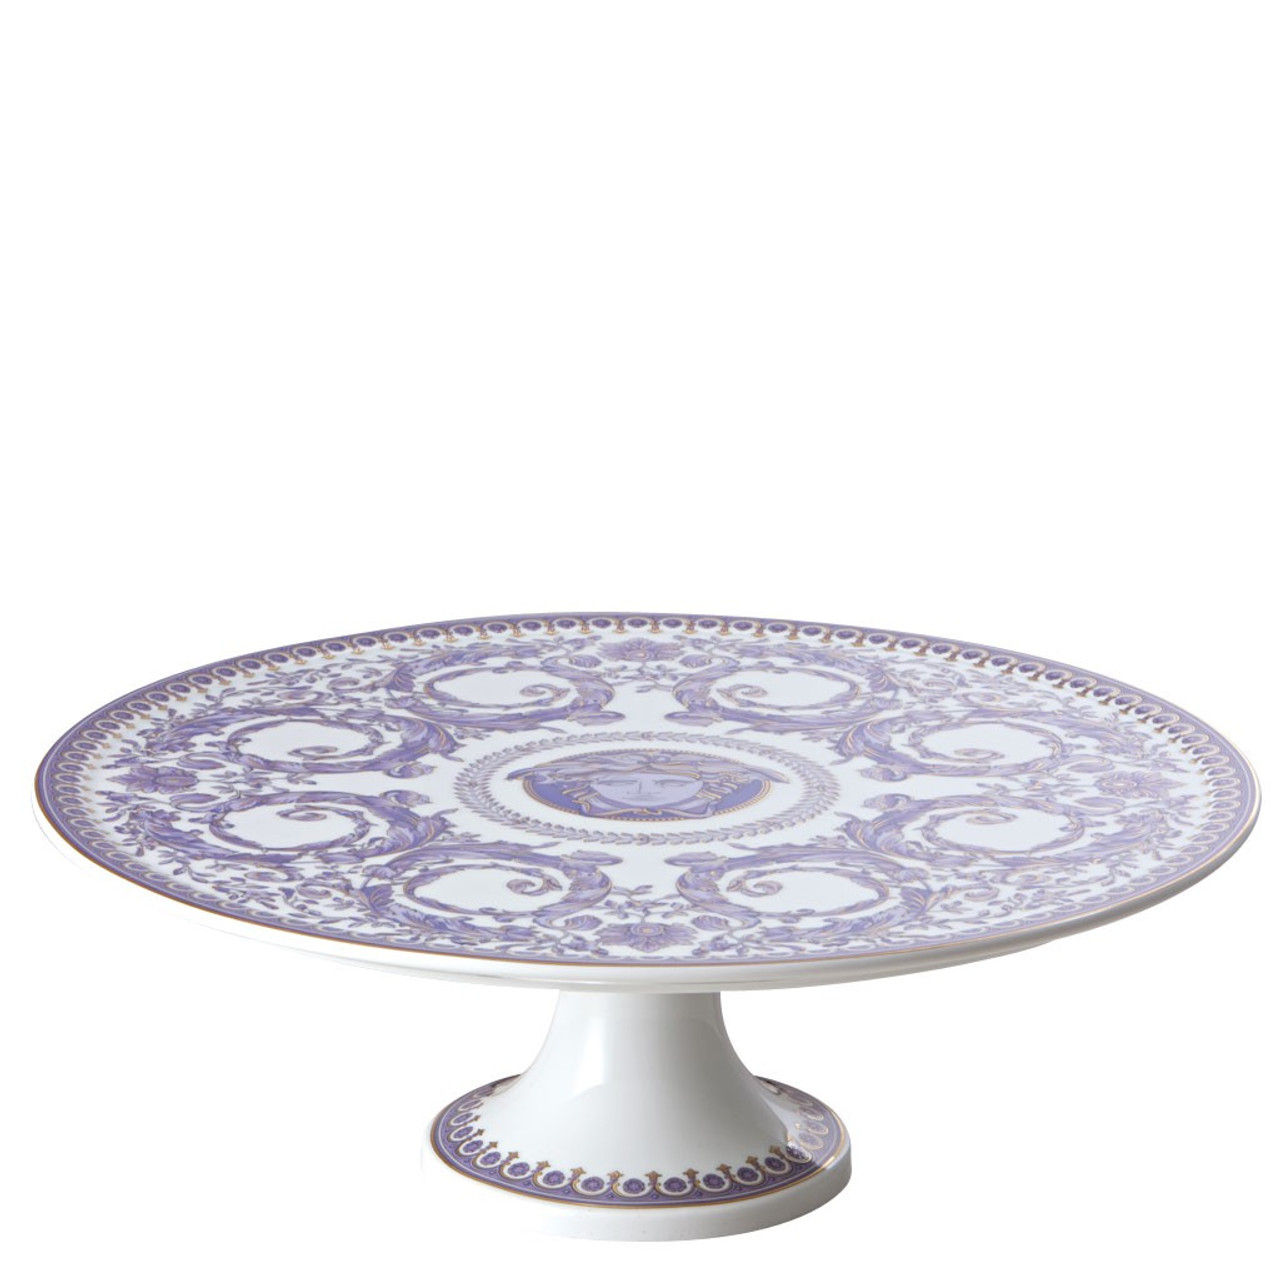 Footed Cake Plate 13 inch | Versace Le Grand Divertissement  sc 1 st  Rosenthal & Footed Cake Plate 13 inch | Le Grand Divertissement| Rosenthal Shop